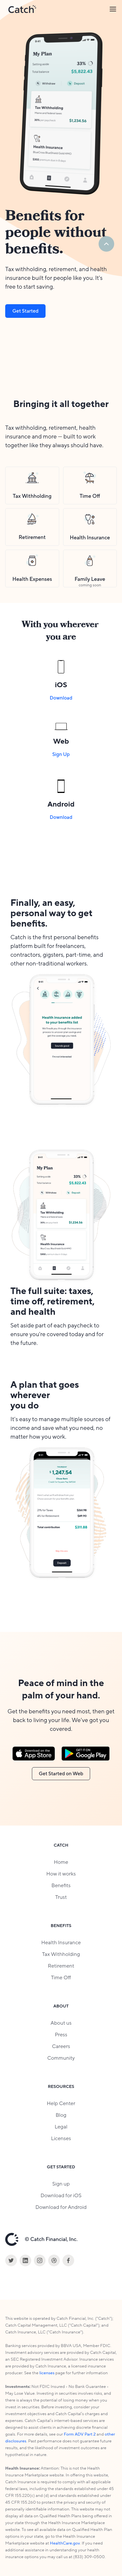 Example of Design for Finance, Insurance, Health Insurance, Mobile Landing Page by catch.co | Mobile Landing Page Design